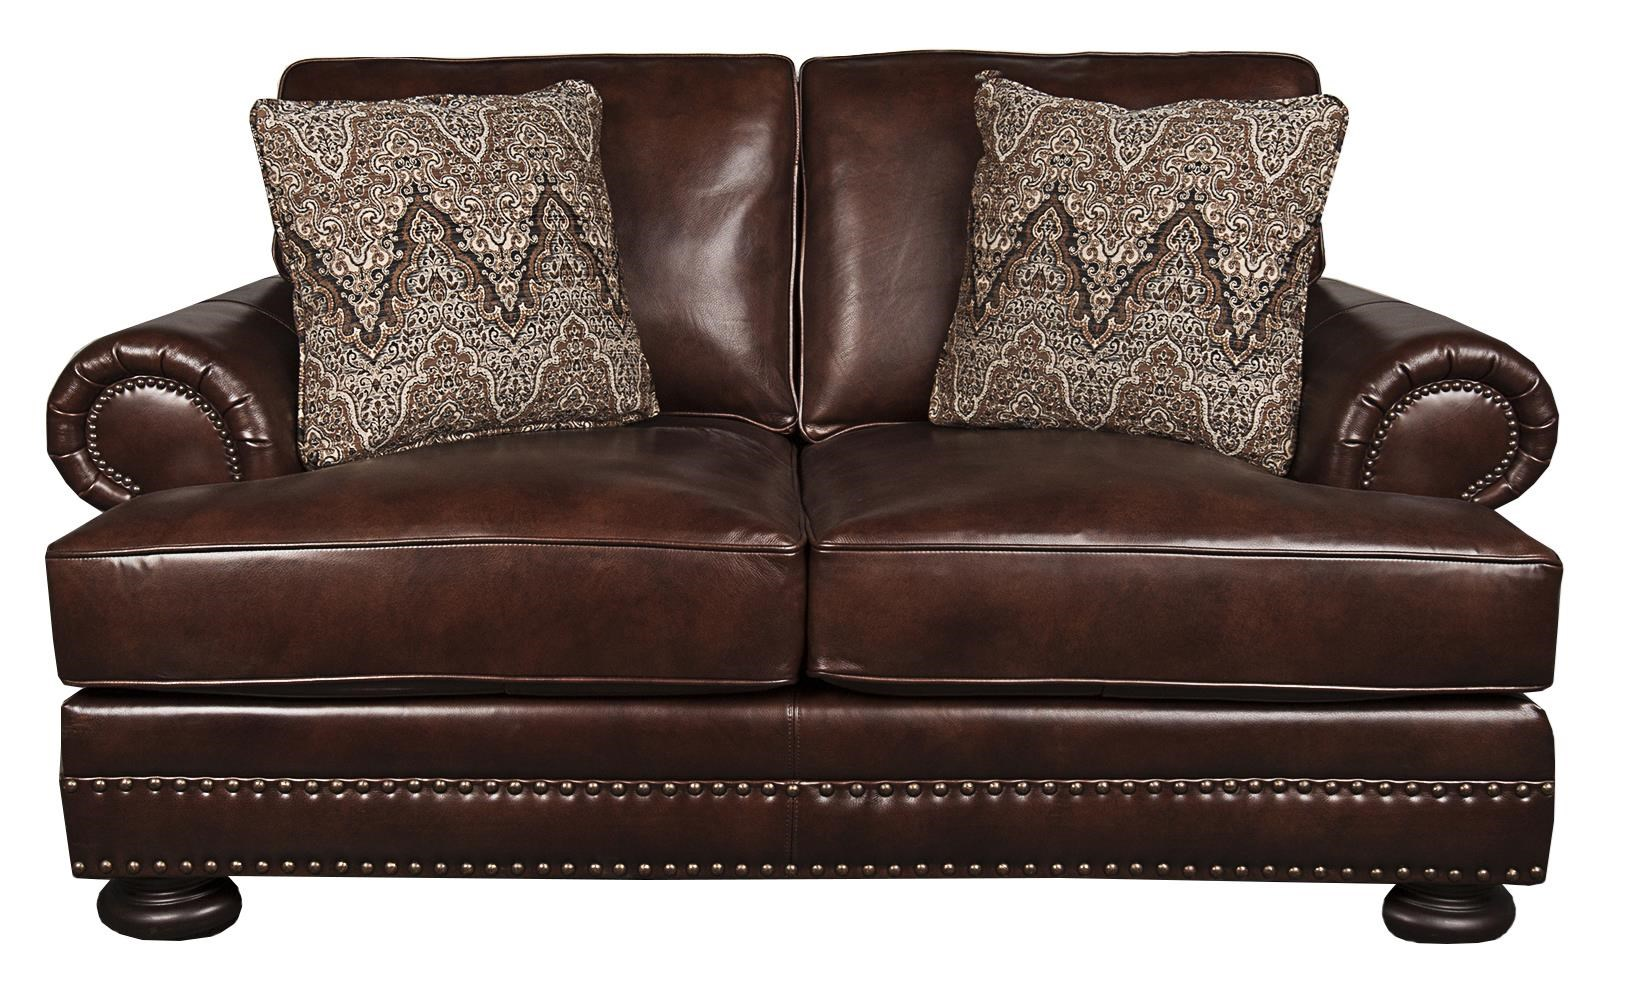 Foster Foster 100% Leather Loveseat by Bernhardt at Morris Home